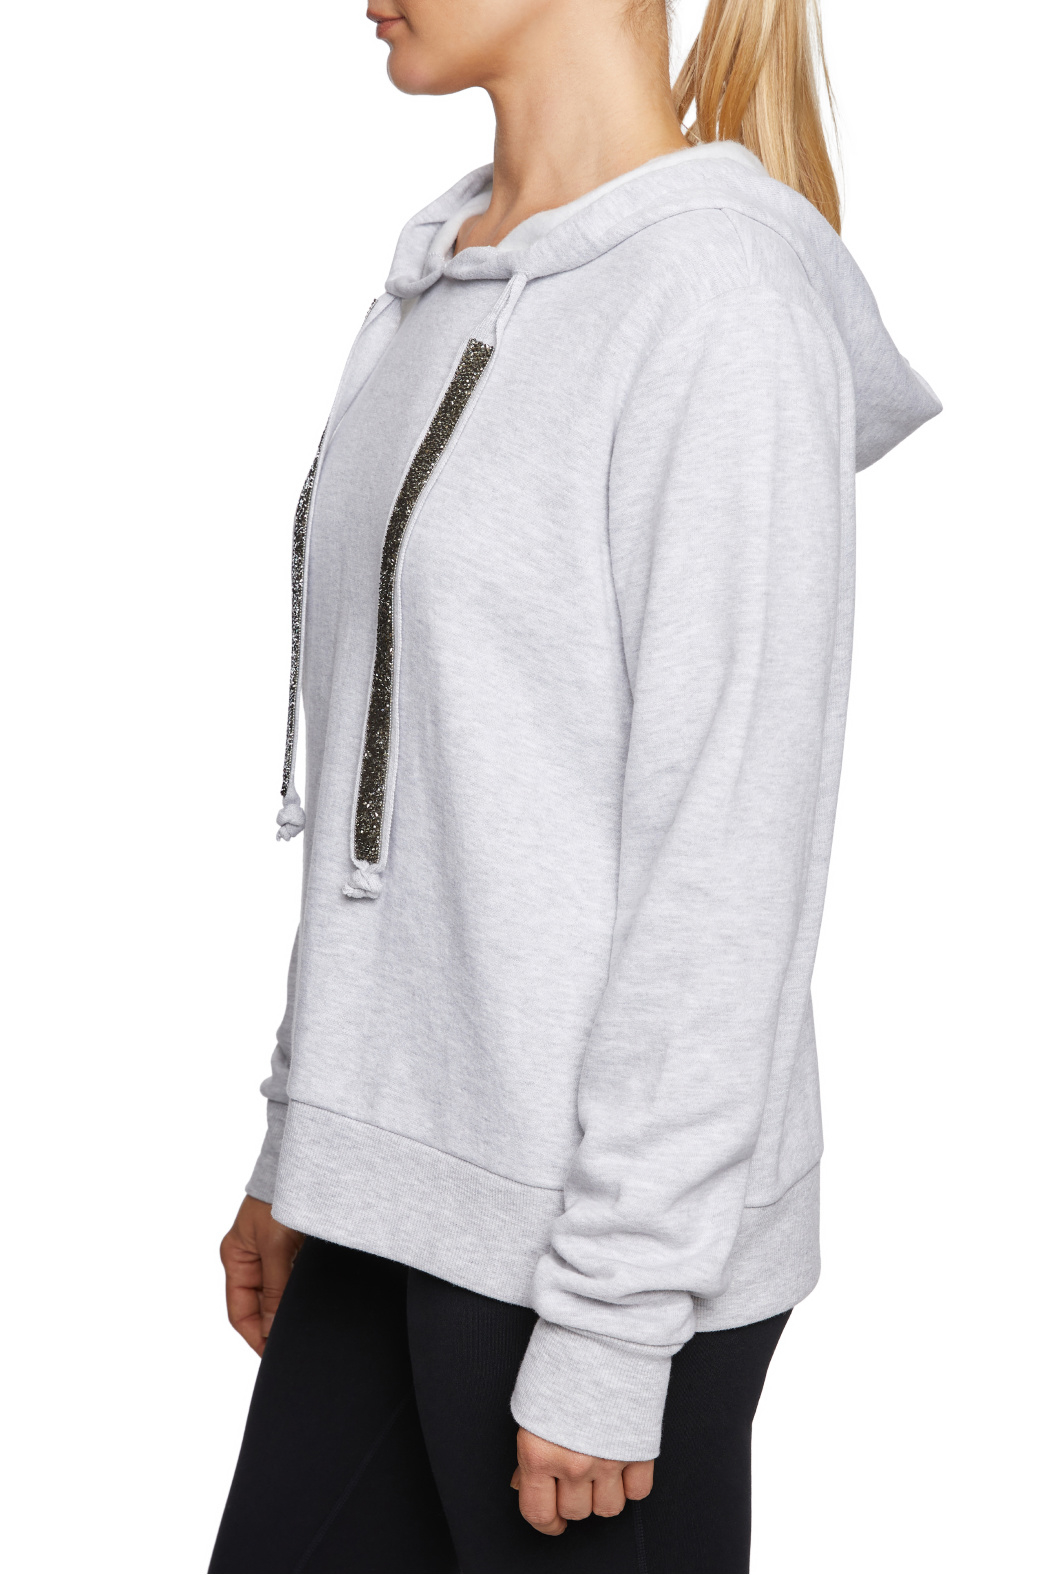 Betsey Johnson Sparkle Trim Hoodie - Front Full Image